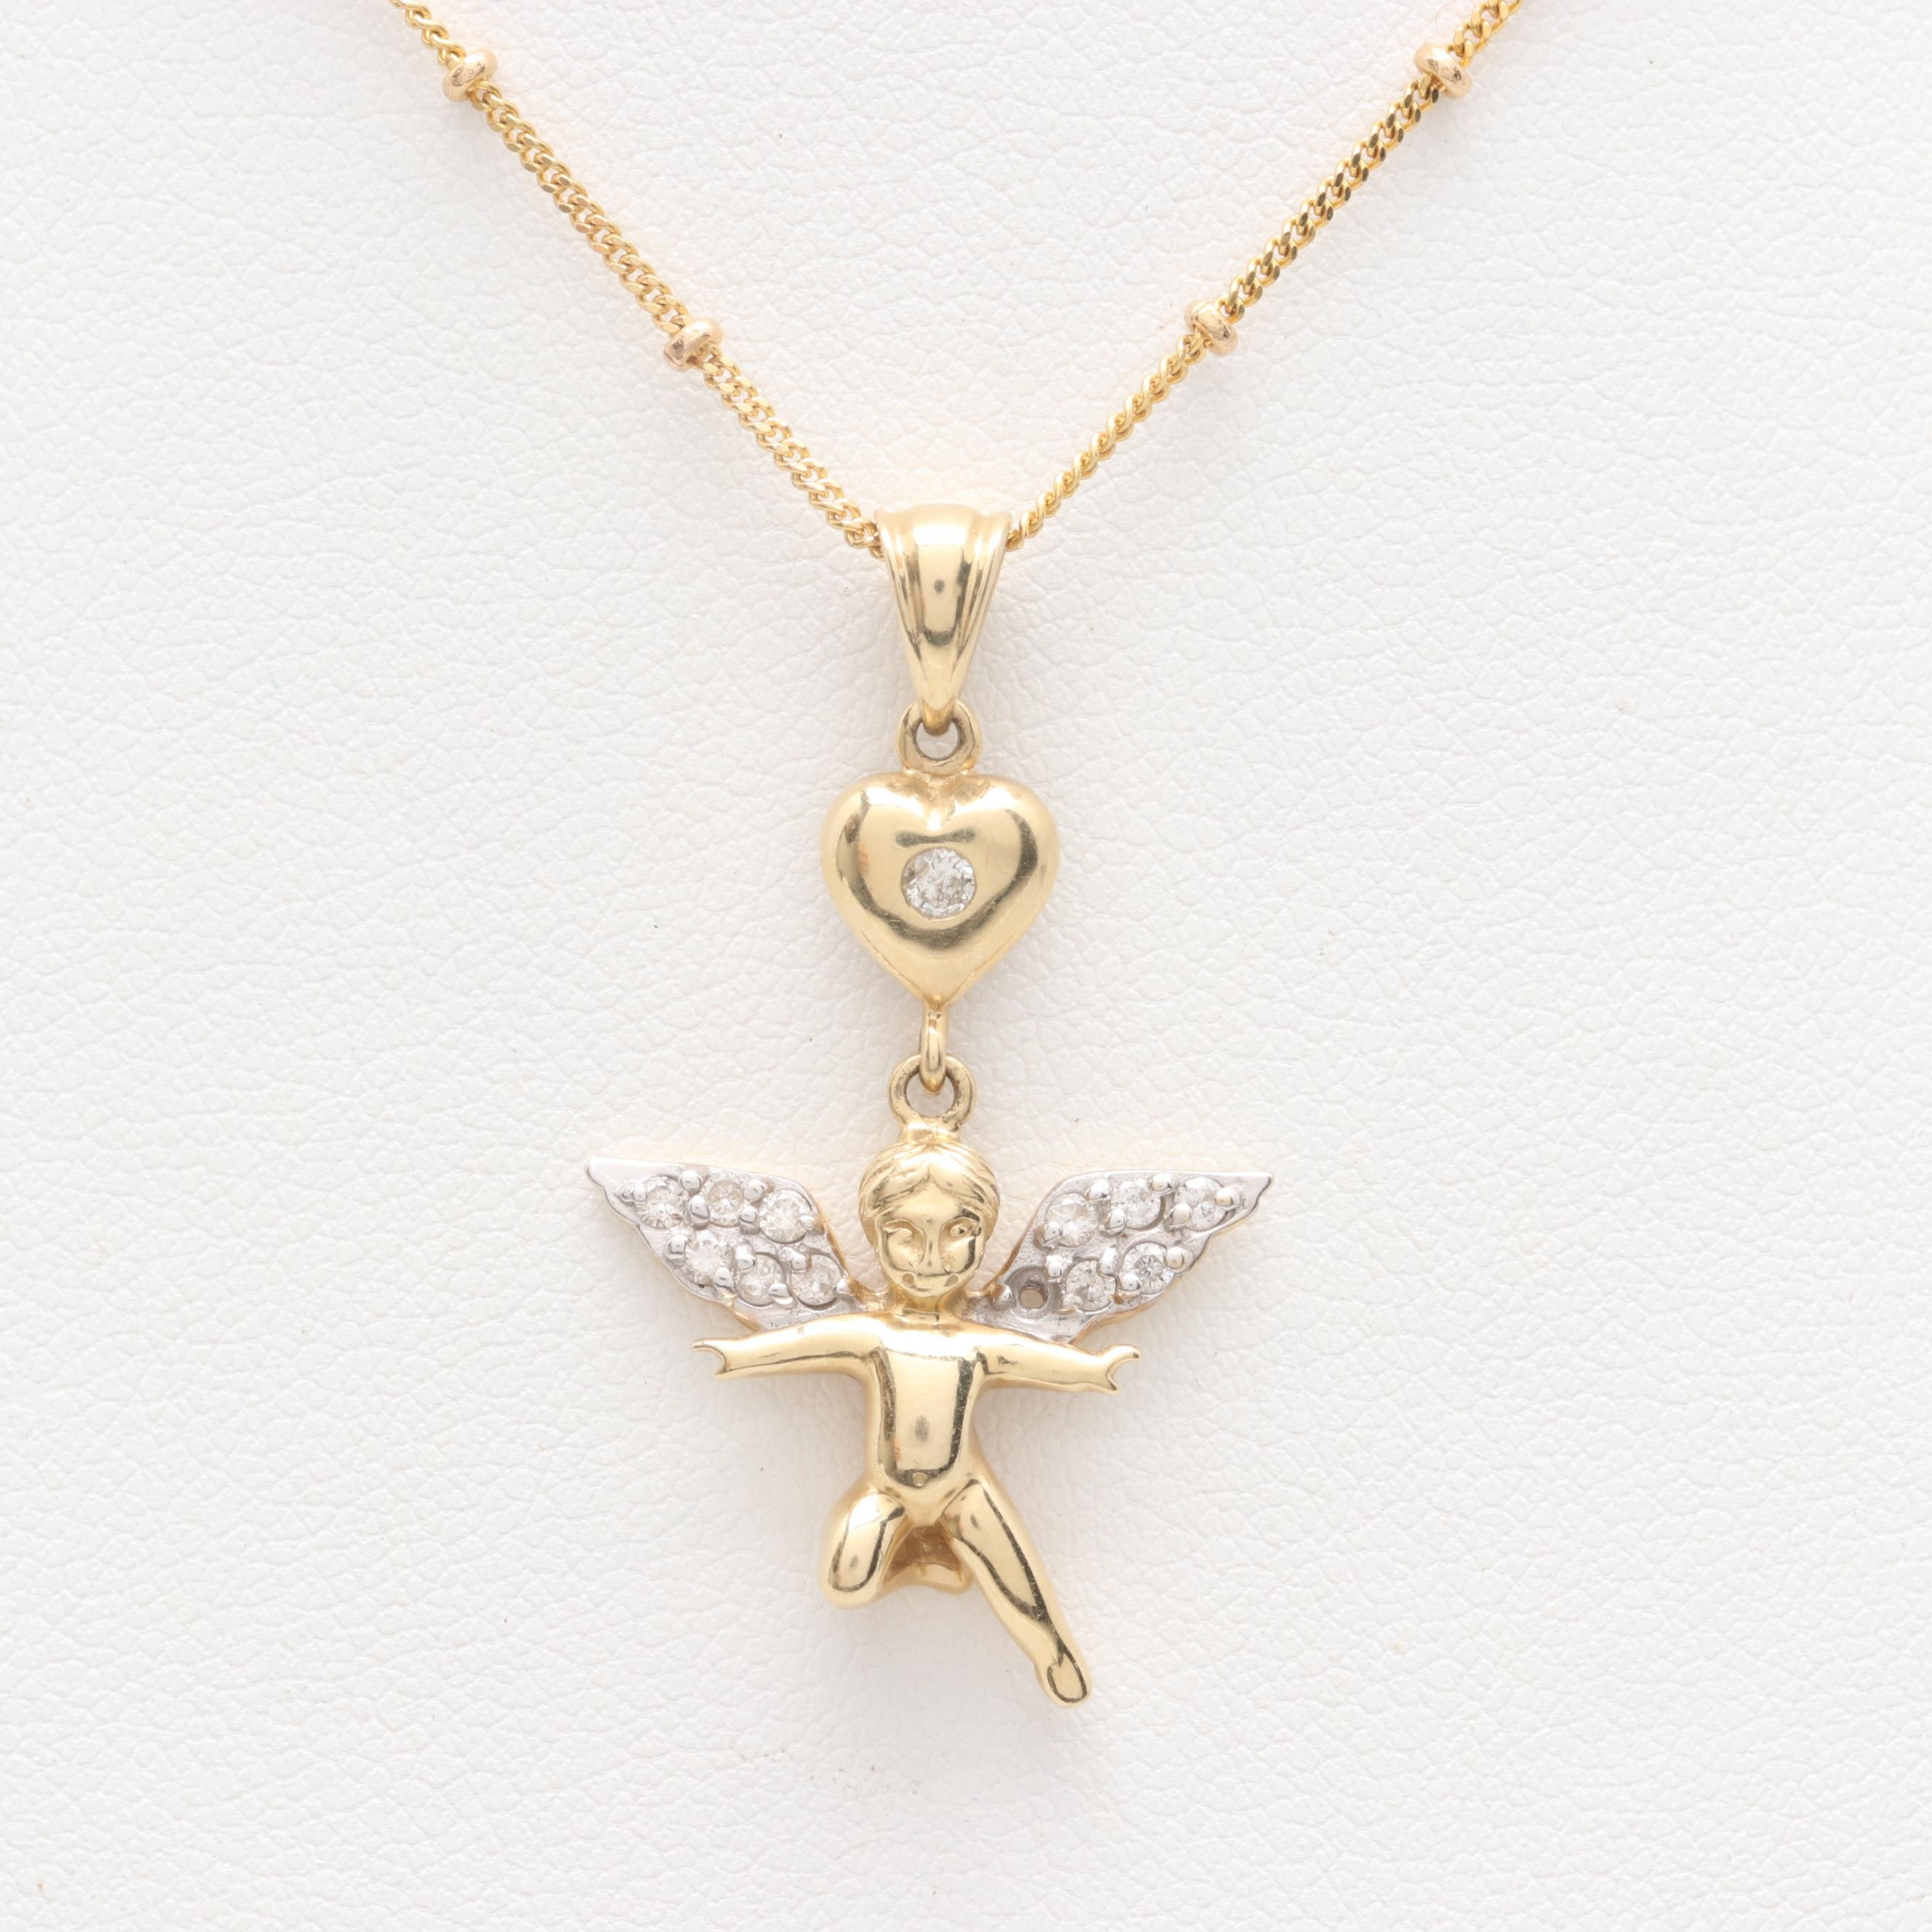 14K Yellow Gold Diamond Cherub and Heart Pendant Necklace